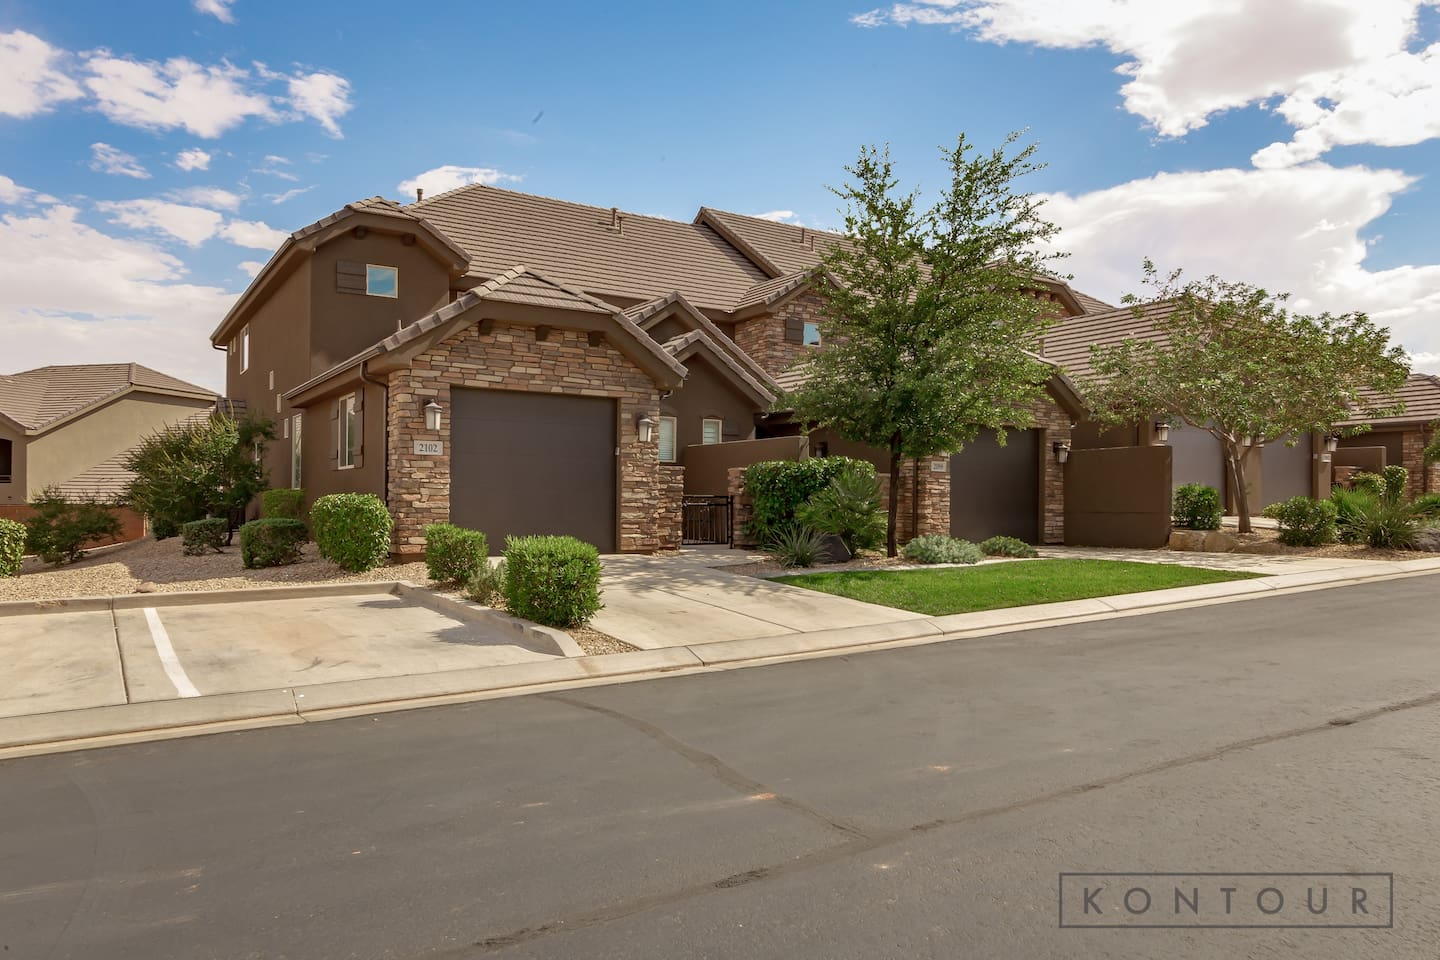 Welcome To 2102 N. Coral Ridge Dr. - FULL COLOR Country Living; End Unit w/Guest Parking Directly To Left Side, TWO Swimming Pools, Spa, Exercise Rm & Clubhouse. Minutes To Zion National Park, Golfing, Red Sands, Water Sports & ALWAYS Blue Skies